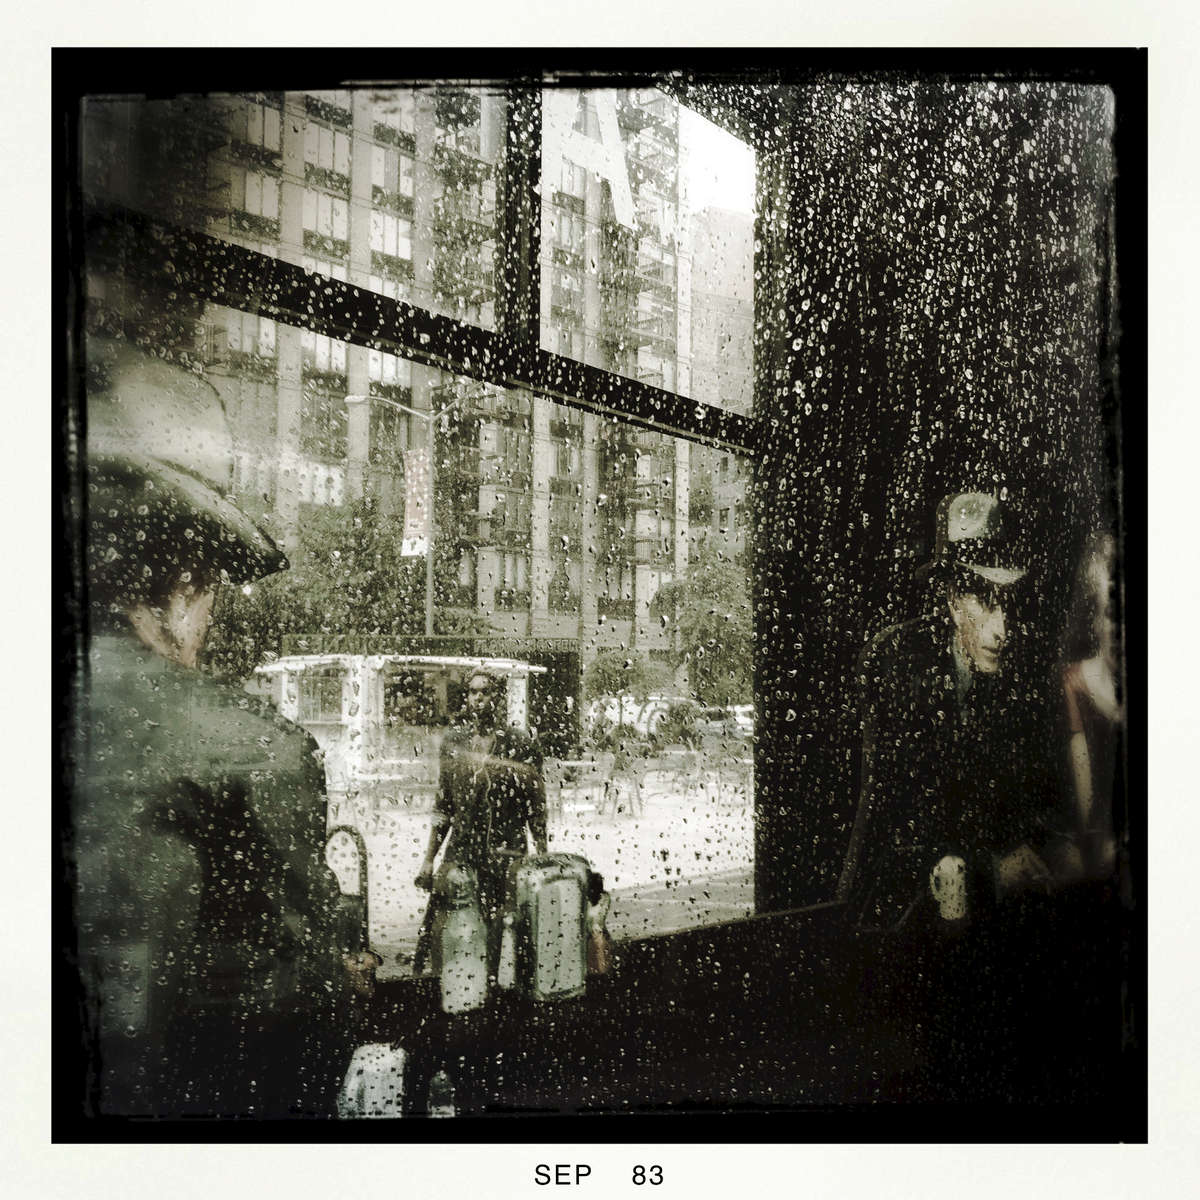 On a rainy day in Midtown New York, Sep. 2013.